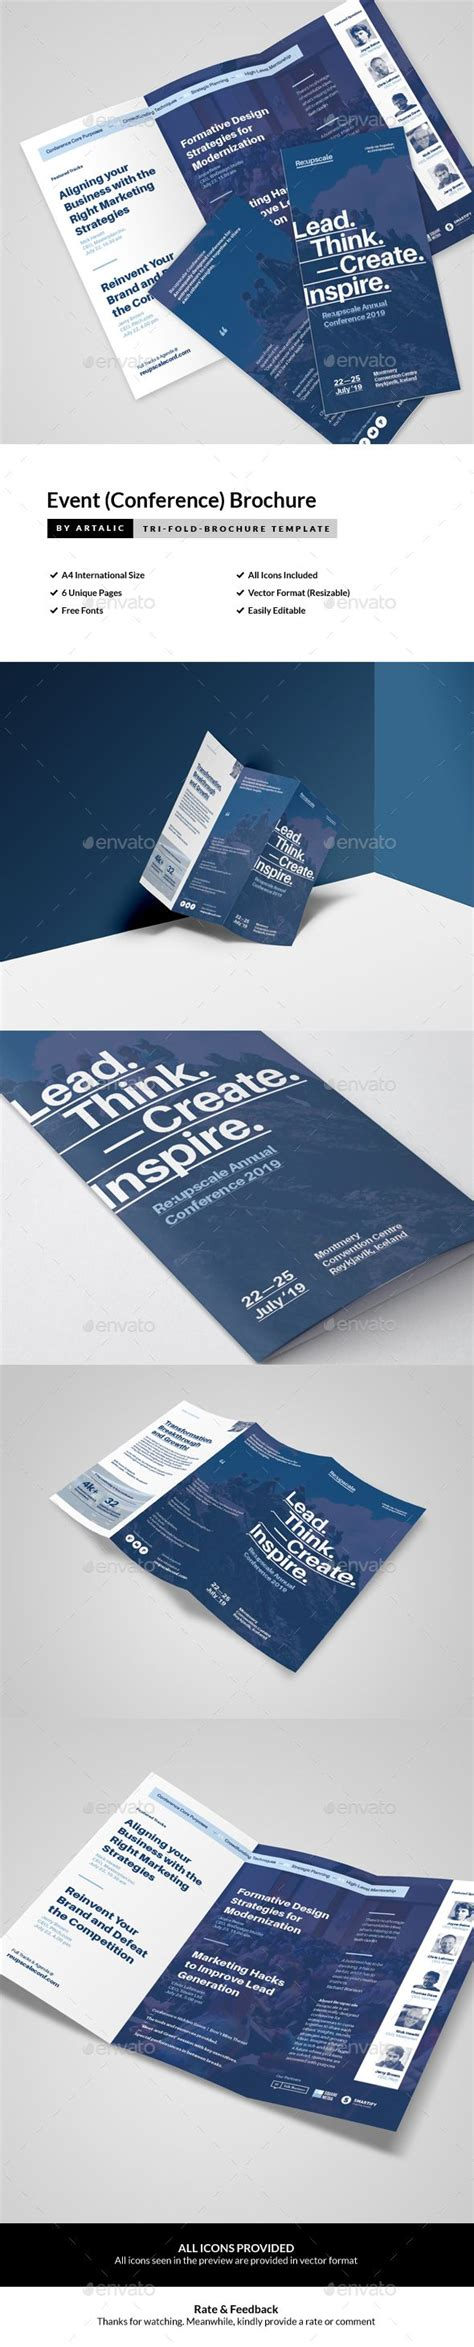 Best 25 Leaflet Template Ideas On Pinterest Leaflet Design Template Flyer Layout And Print Conference Agenda Template Indesign